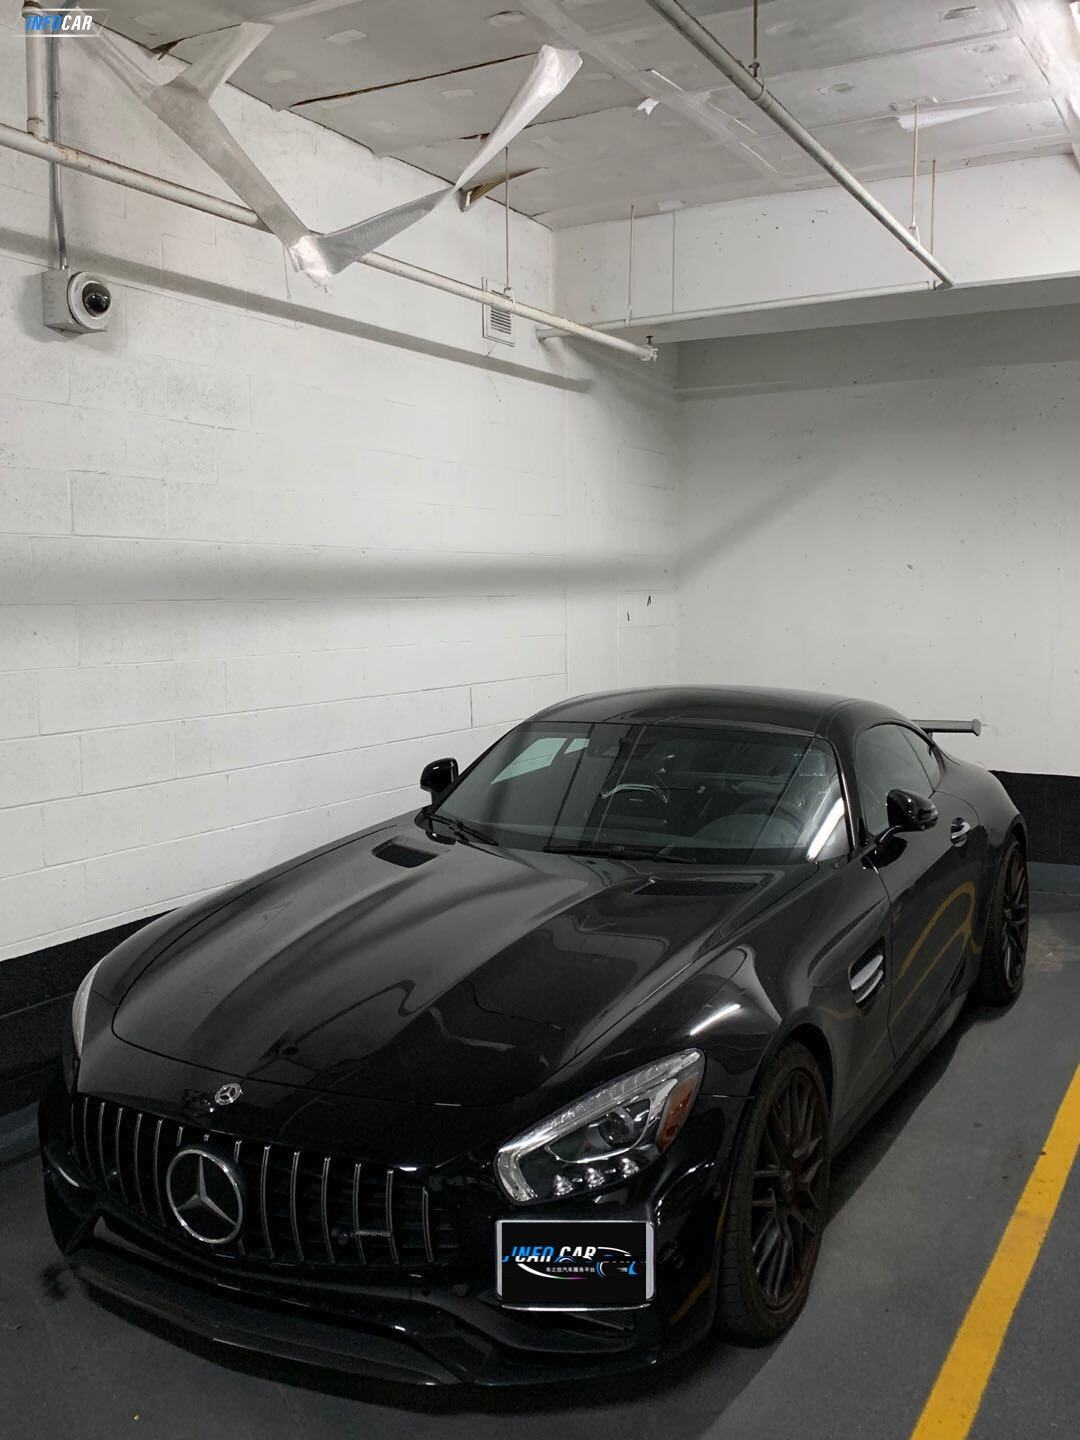 2018 Mercedes-Benz AMG GT GTC - INFOCAR - Toronto's Most Comprehensive New and Used Auto Trading Platform